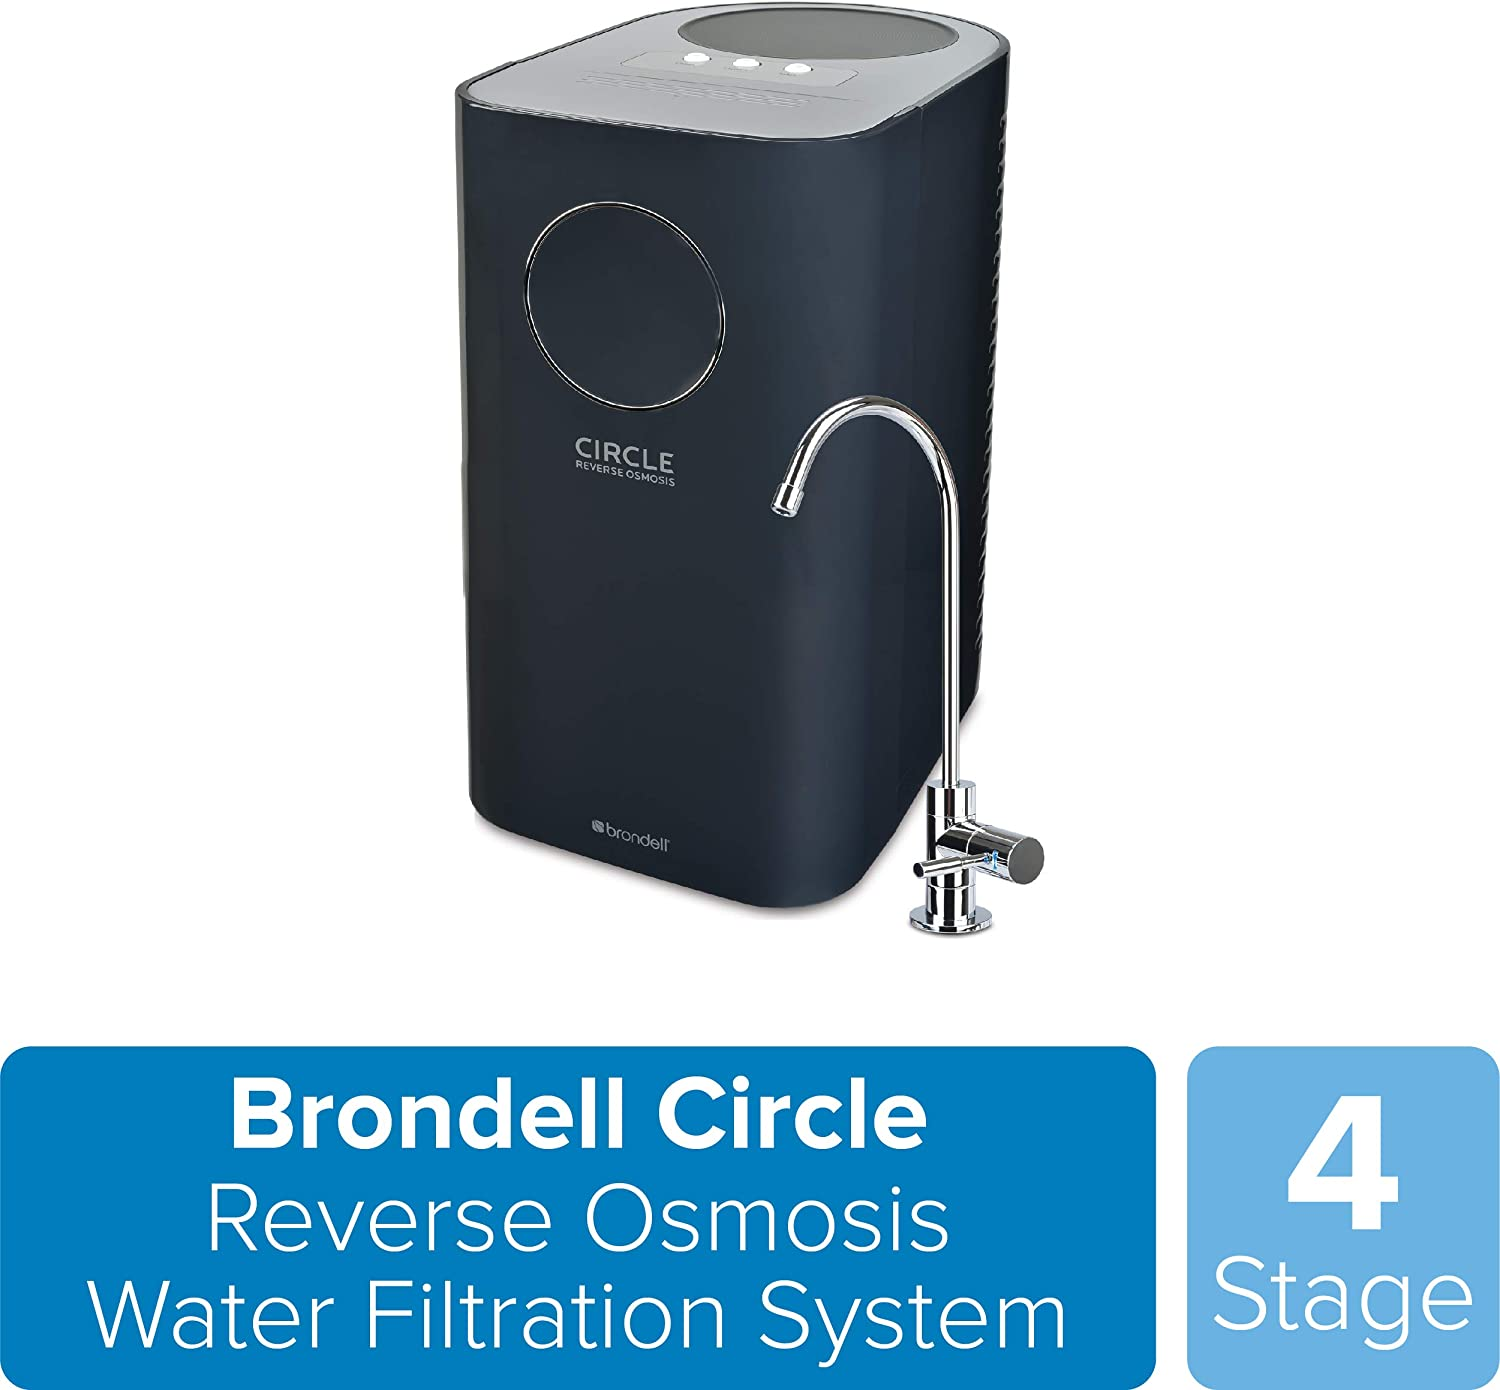 Extract Purified Well Water